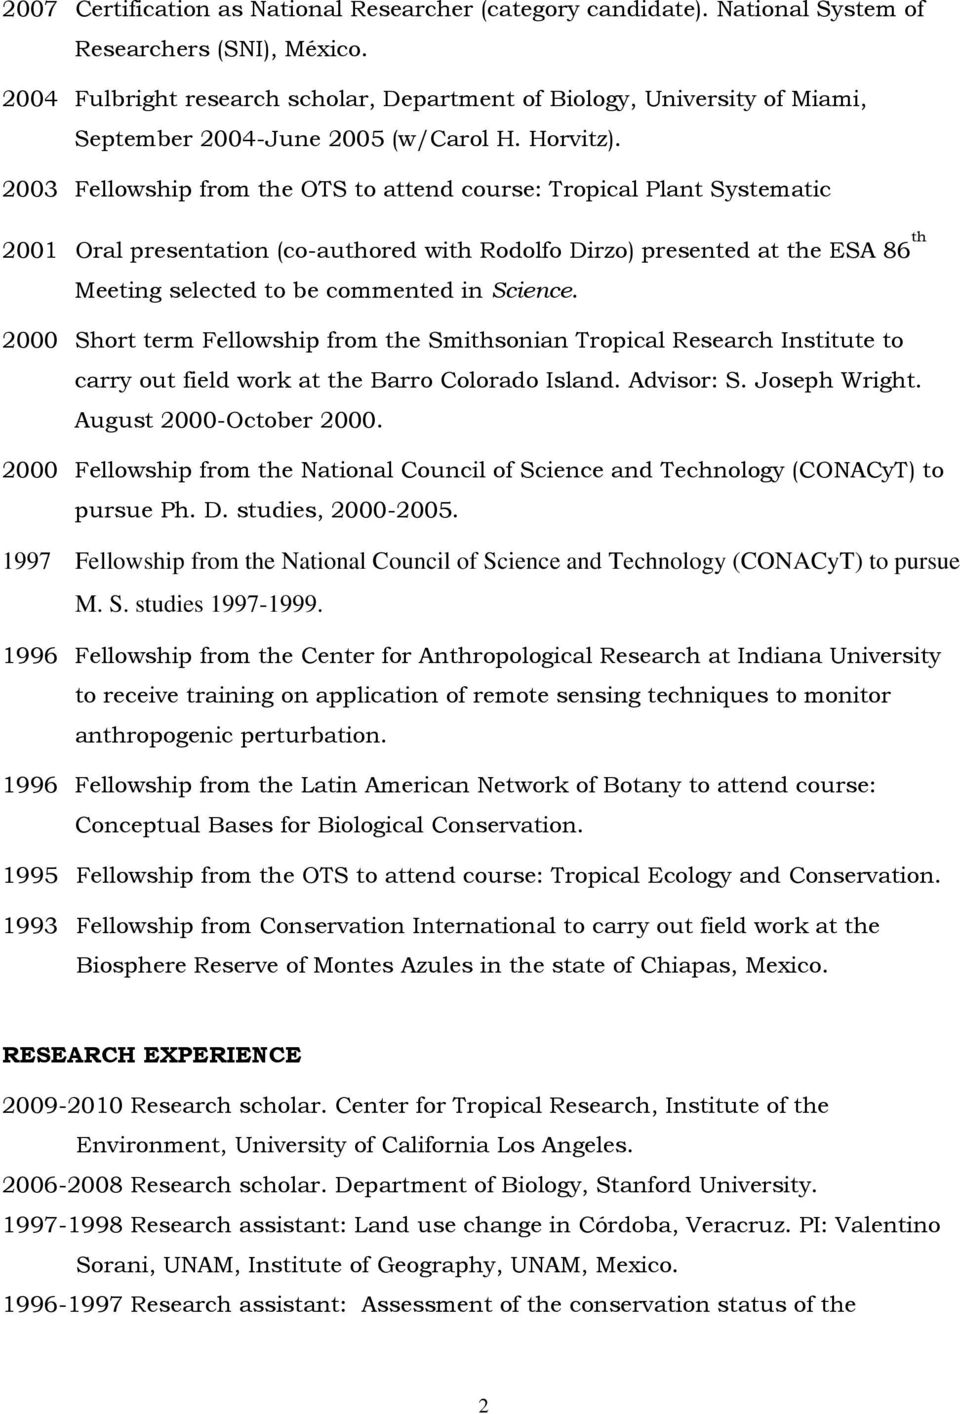 2003 Fellowship from the OTS to attend course: Tropical Plant Systematic 2001 Oral presentation (co-authored with Rodolfo Dirzo) presented at the ESA 86 th Meeting selected to be commented in Science.